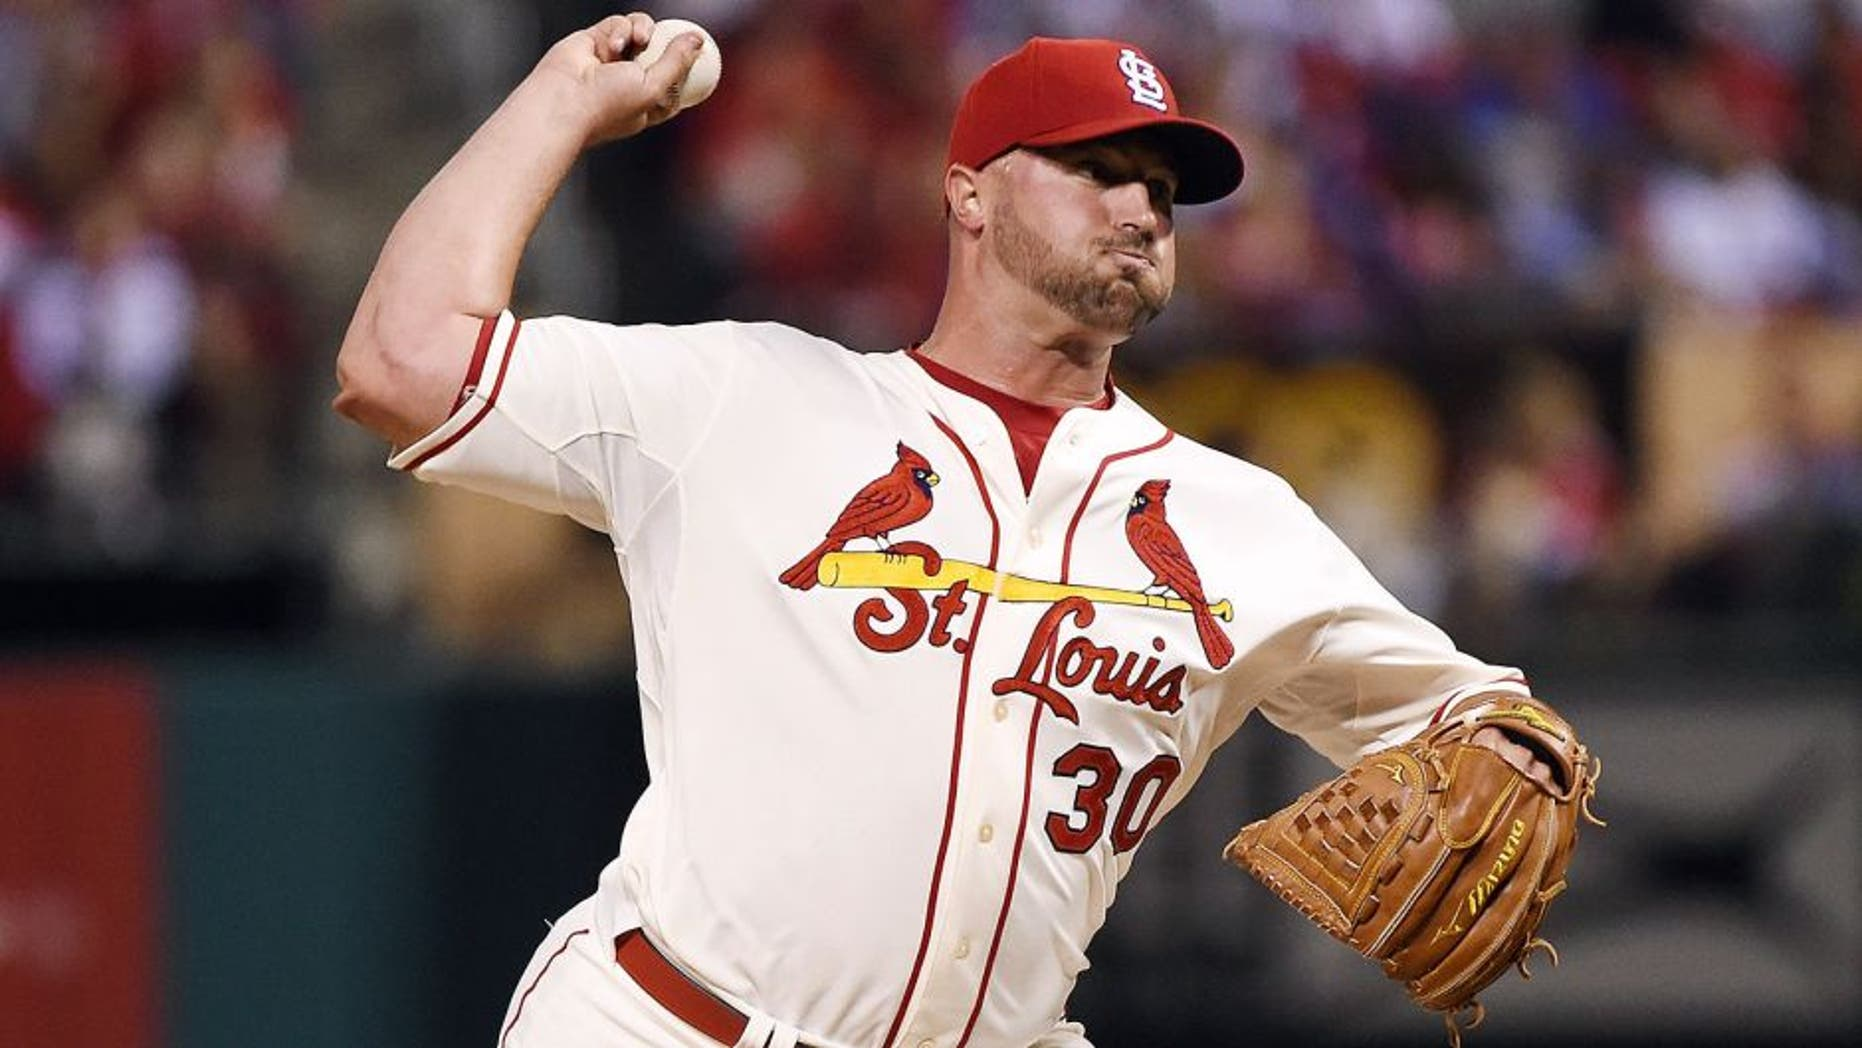 ST LOUIS, MO - OCTOBER 10: Jonathan Broxton #30 of the St. Louis Cardinals throws a pitch in the ninth inning against the Chicago Cubs during game two of the National League Division Series at Busch Stadium on October 10, 2015 in St Louis, Missouri. (Photo by Michael B. Thomas/Getty Images)